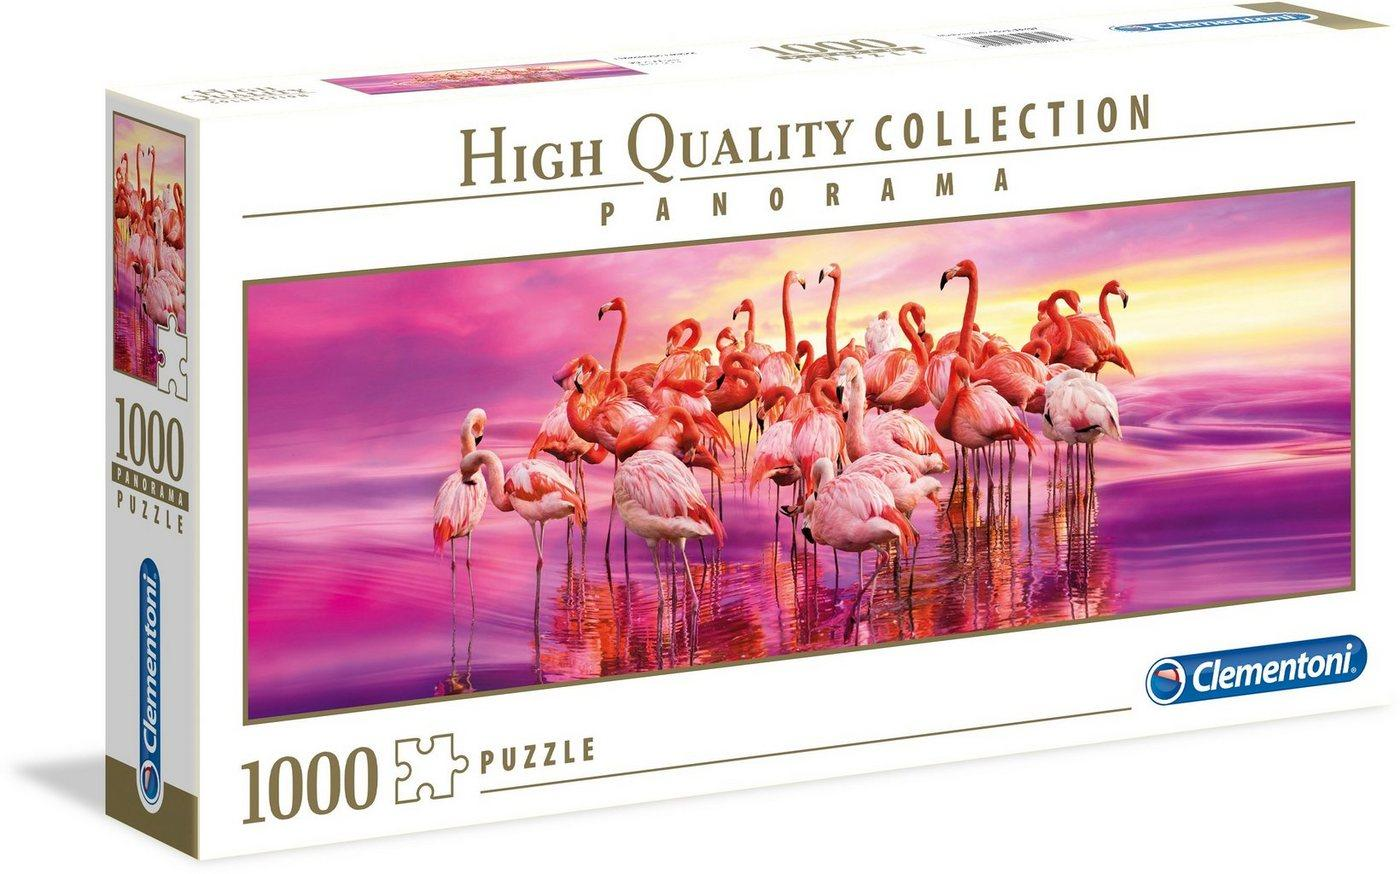 Clementoni® Puzzle »Panorama High Quality Collection - Tanz der Flamingos«, 1000 Puzzleteile, Made in Europe